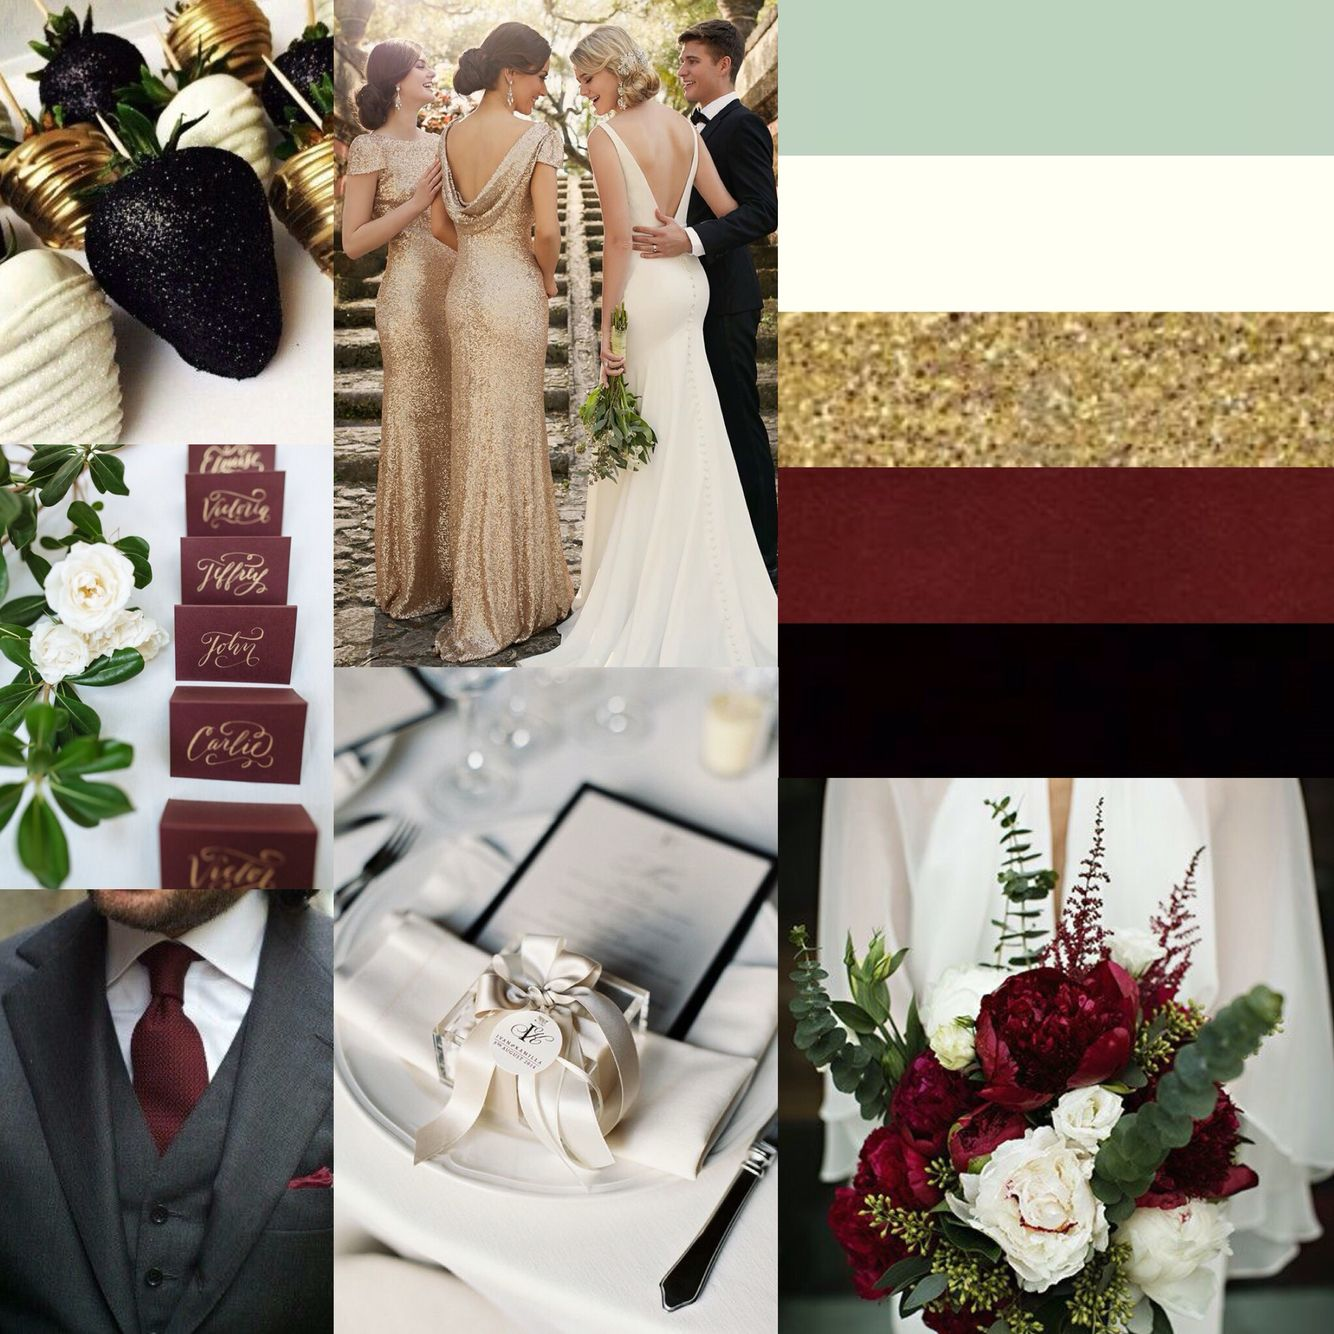 Peacolor Wedding Ideas: Black, Gold, Ivory, Pale Green And Marsala- Beautiful